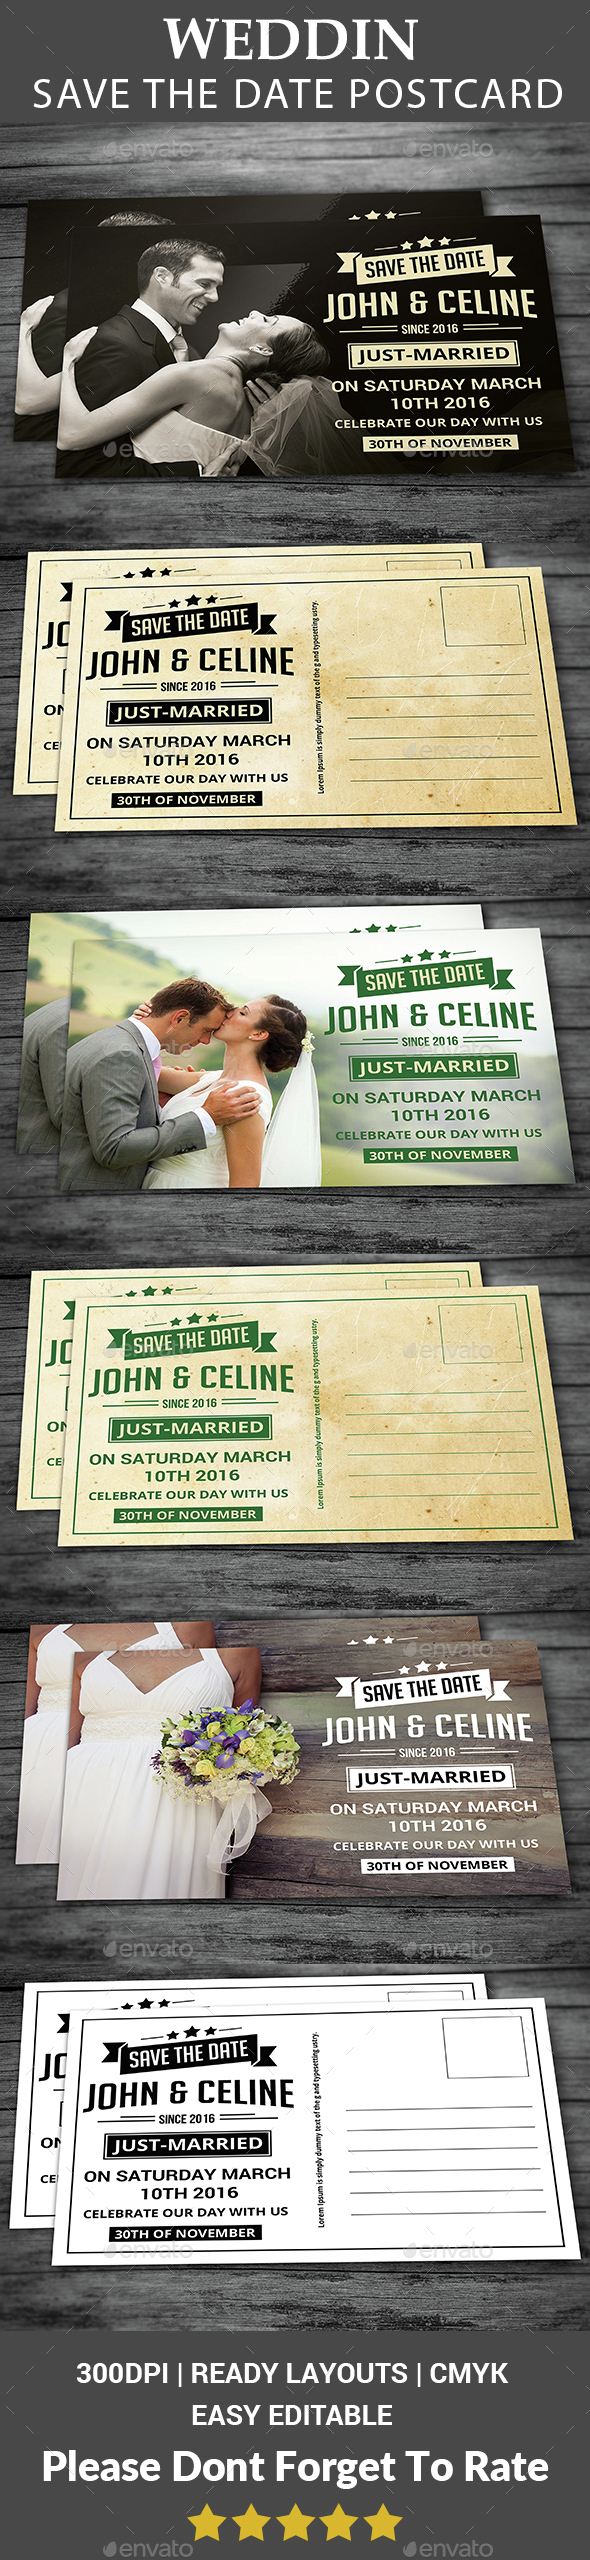 Save The Date Postcard - Weddings Cards & Invites